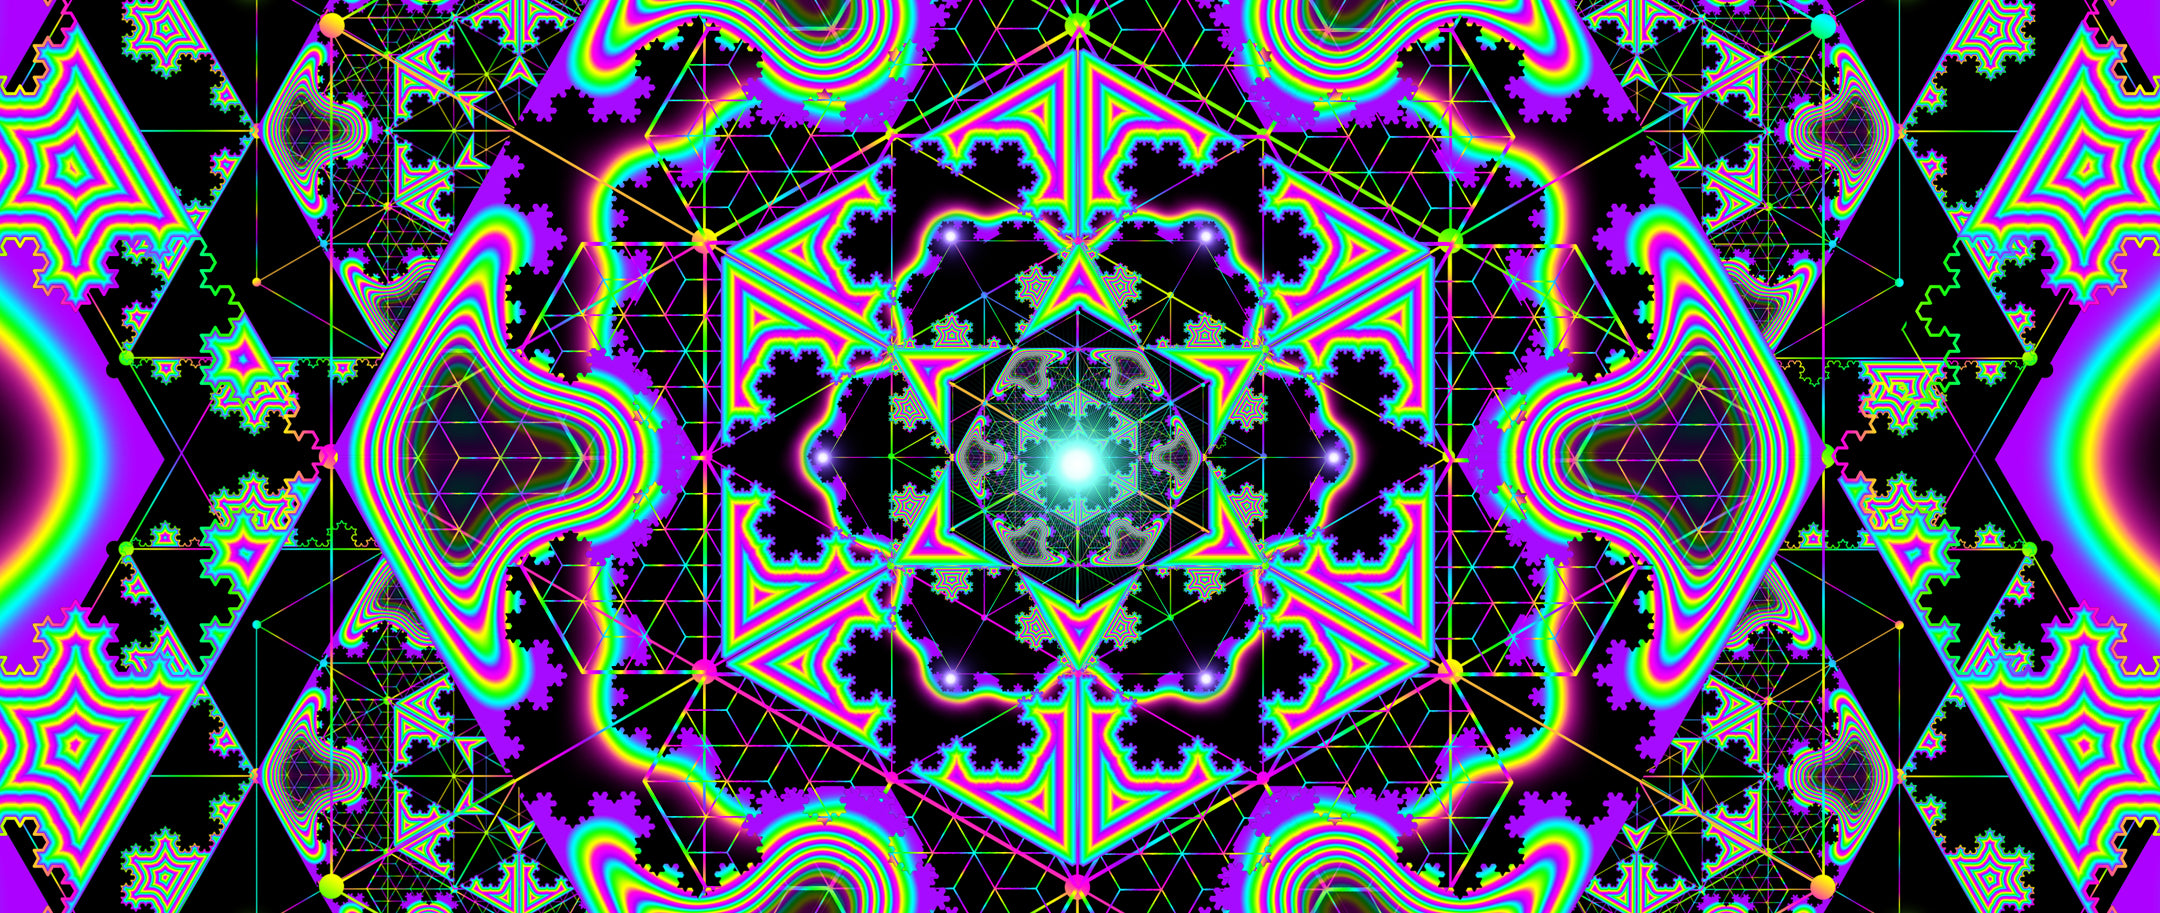 Microgram: Psychedelic Fractalized Geometry